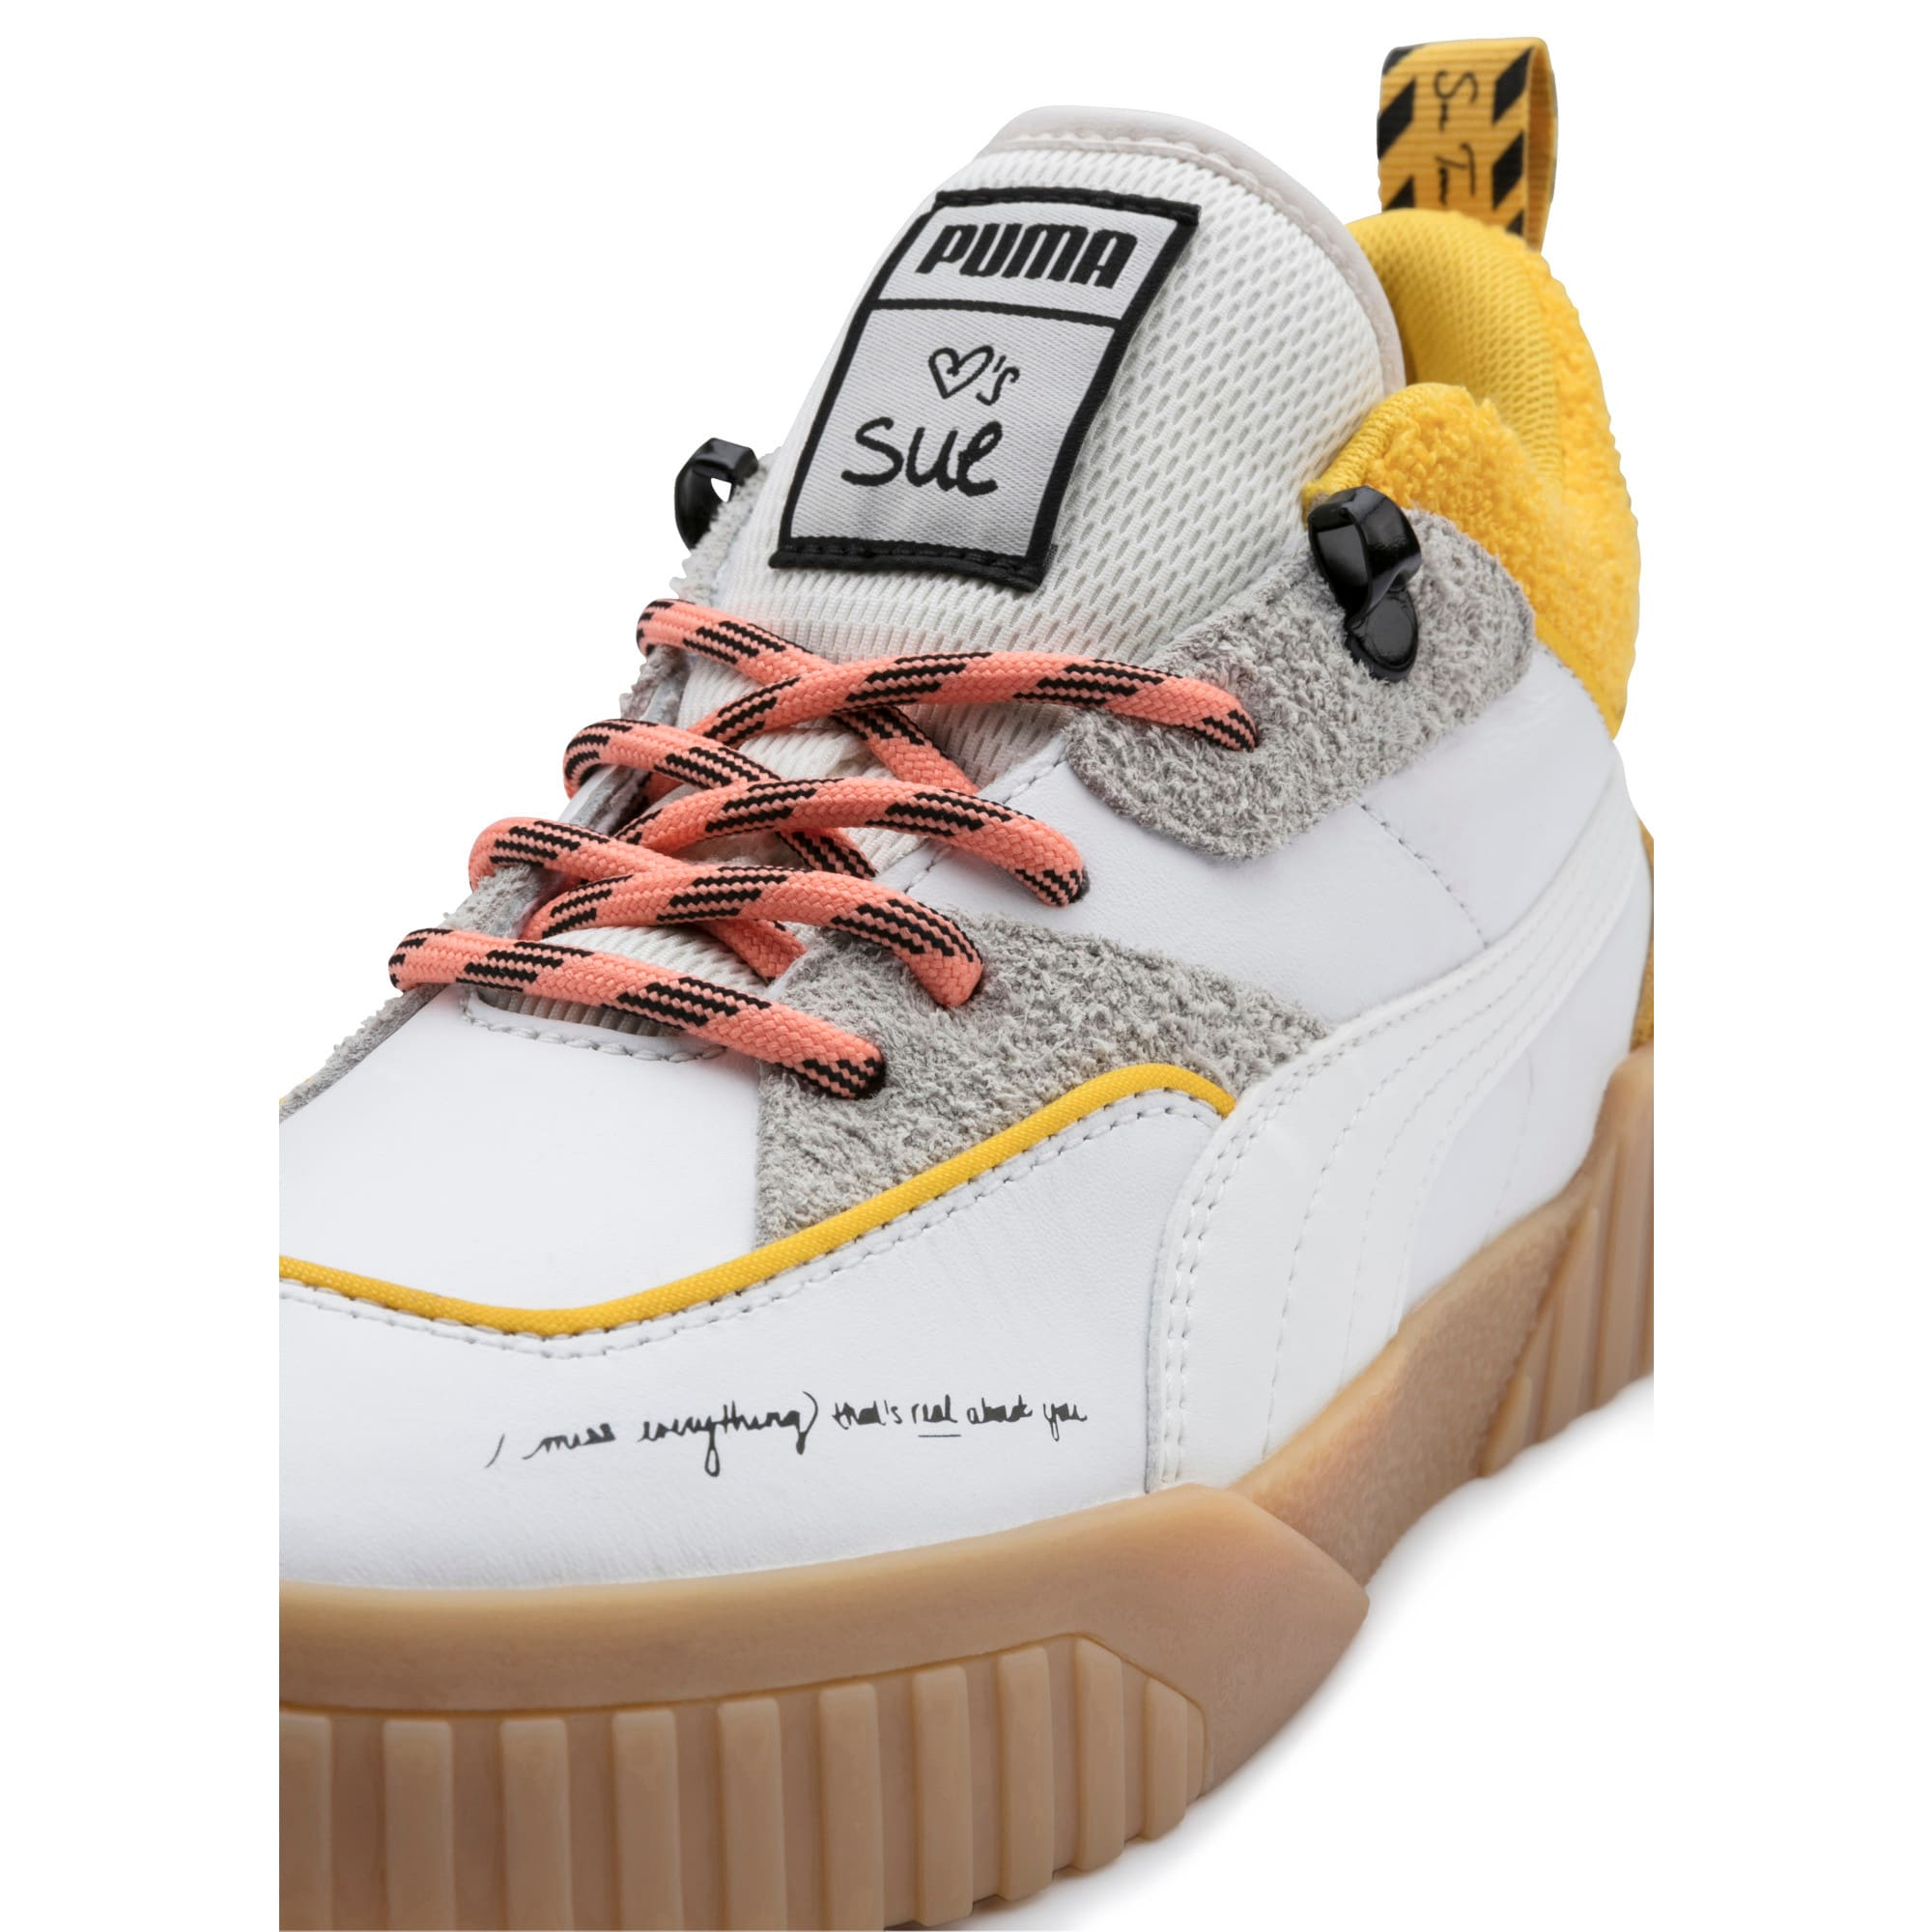 Thumbnail 7 of PUMA x SUE TSAI Cali sportschoenen voor dames, Bright White-Bright White, medium